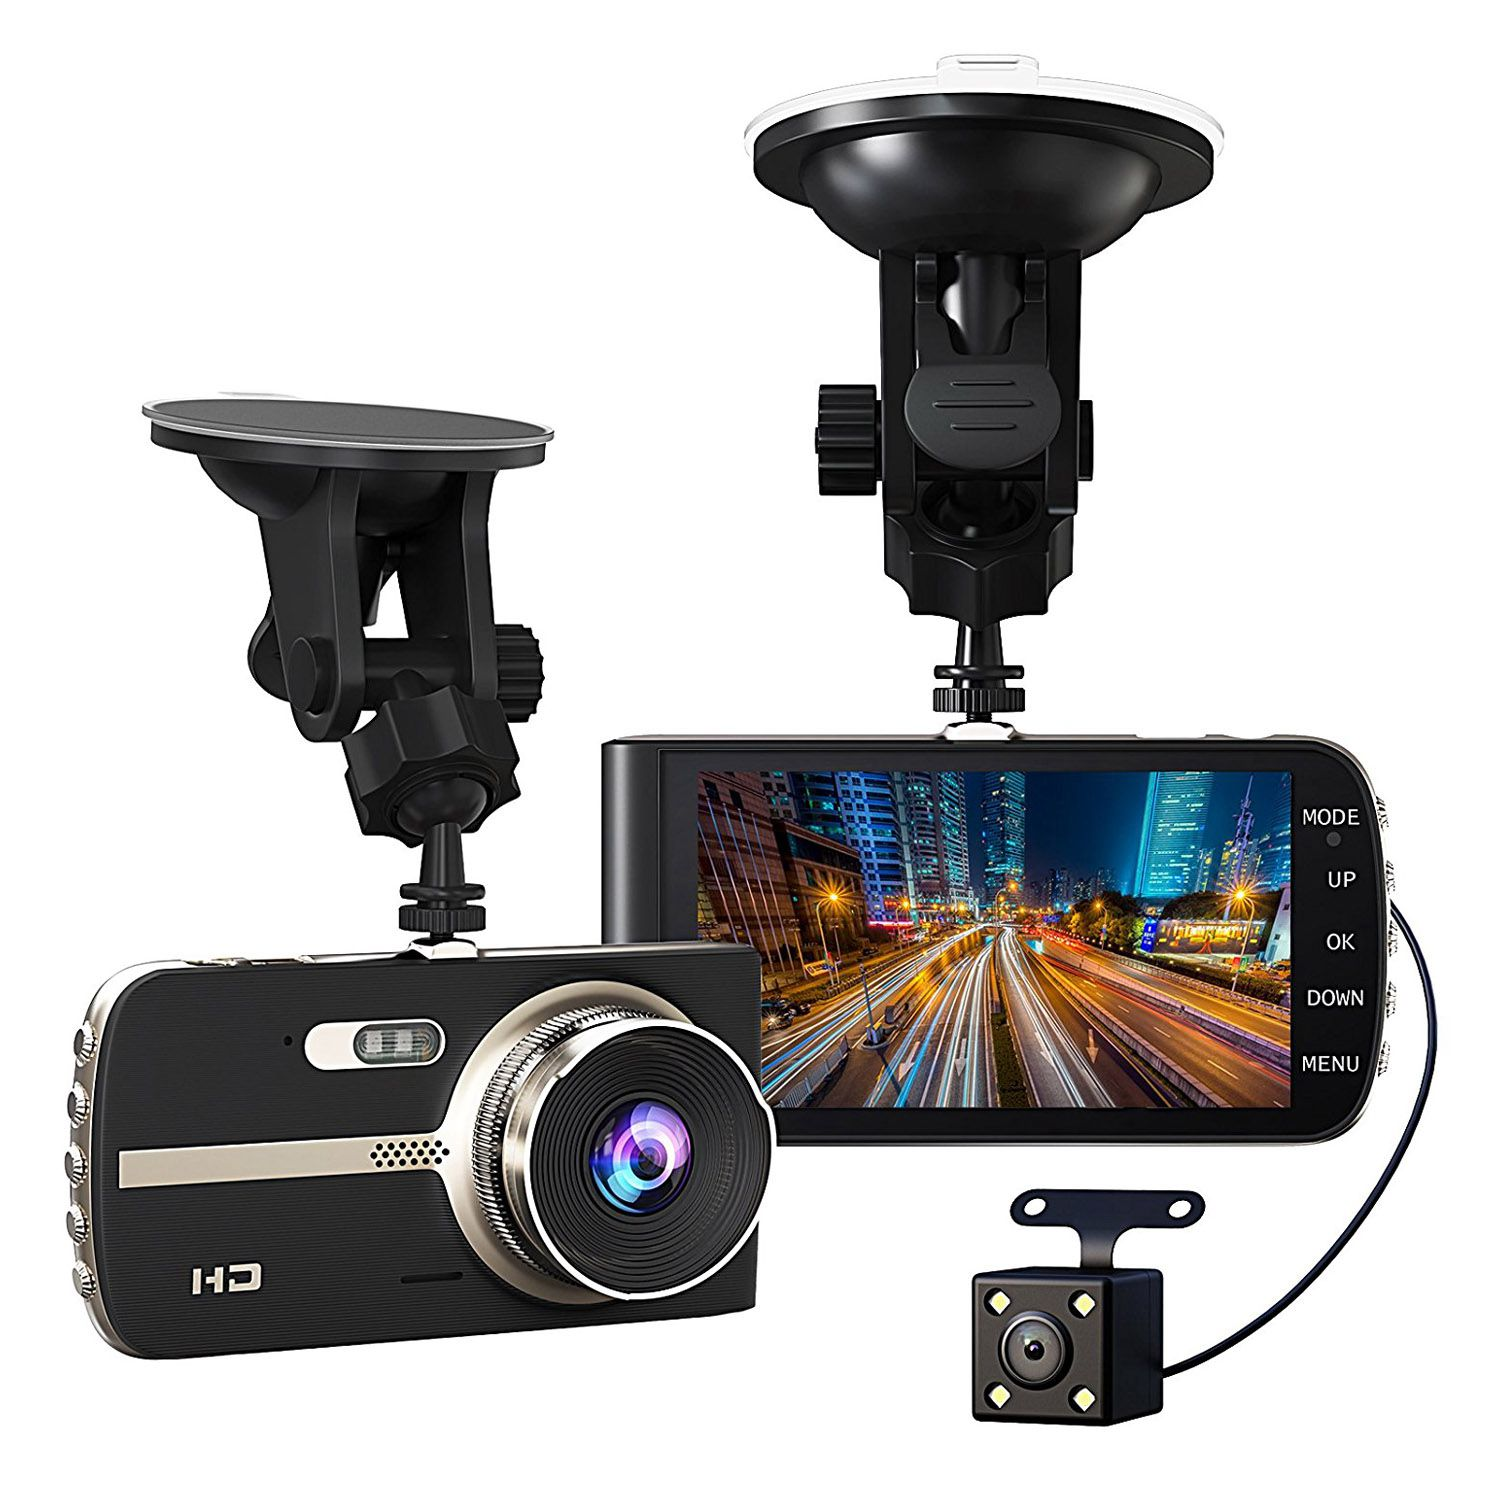 Super HD 1080P Front + VGA Rear 290 Degree Super Wide Angle Car Dash Cam with 4 inch Large HD Screen, G-Sensor, Loop Recording